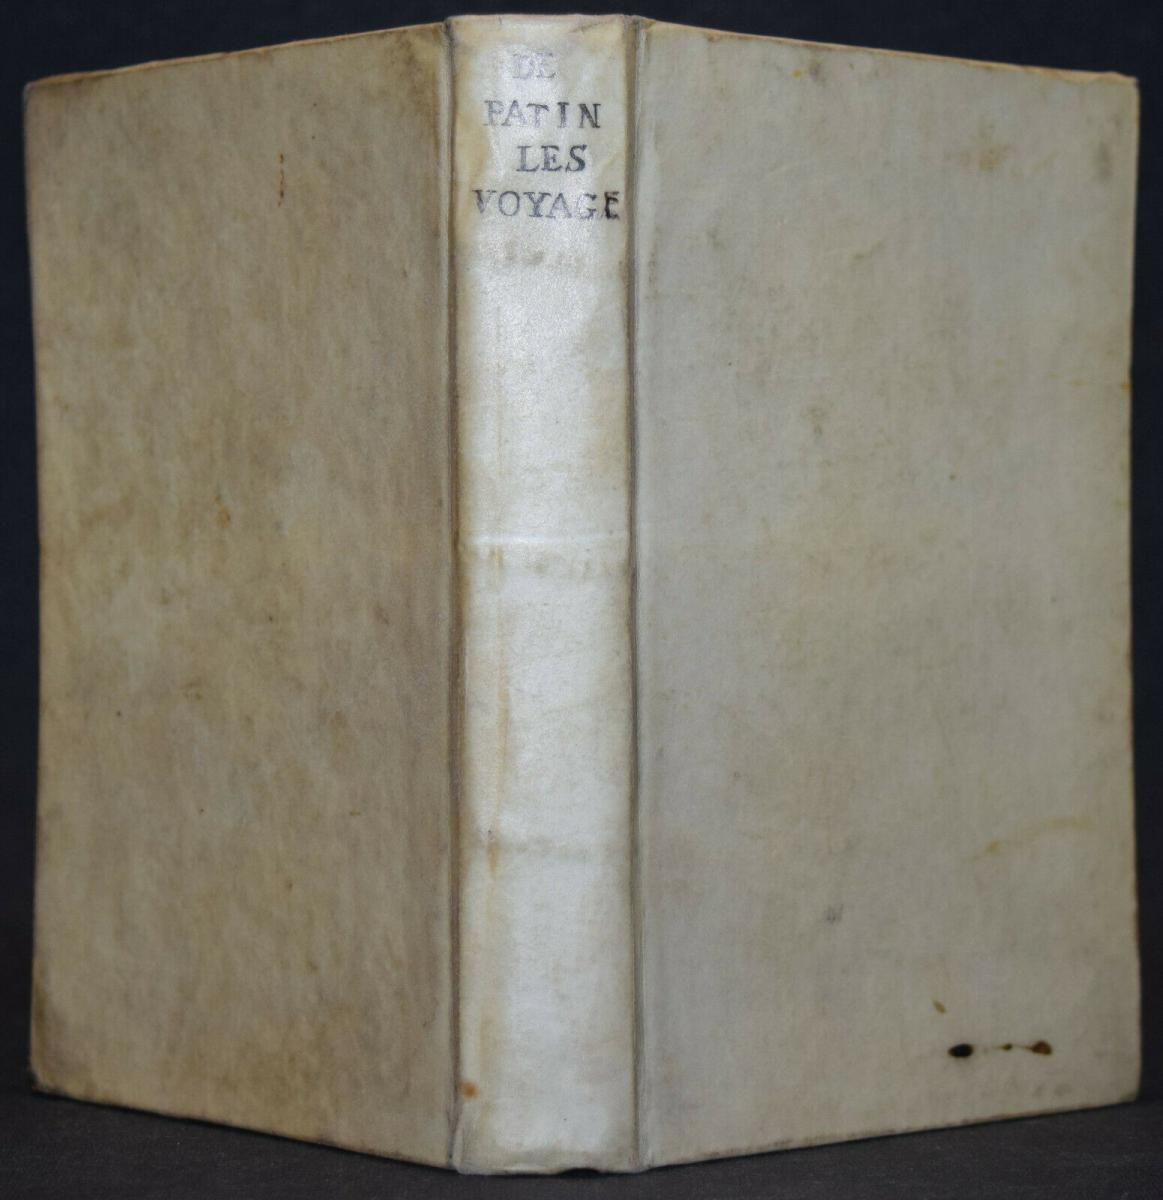 CHARLES PATIN - RELATIONS HISTORIQUES ET CURIEUSES WADE VOYAGES - 1695 - REISE 1